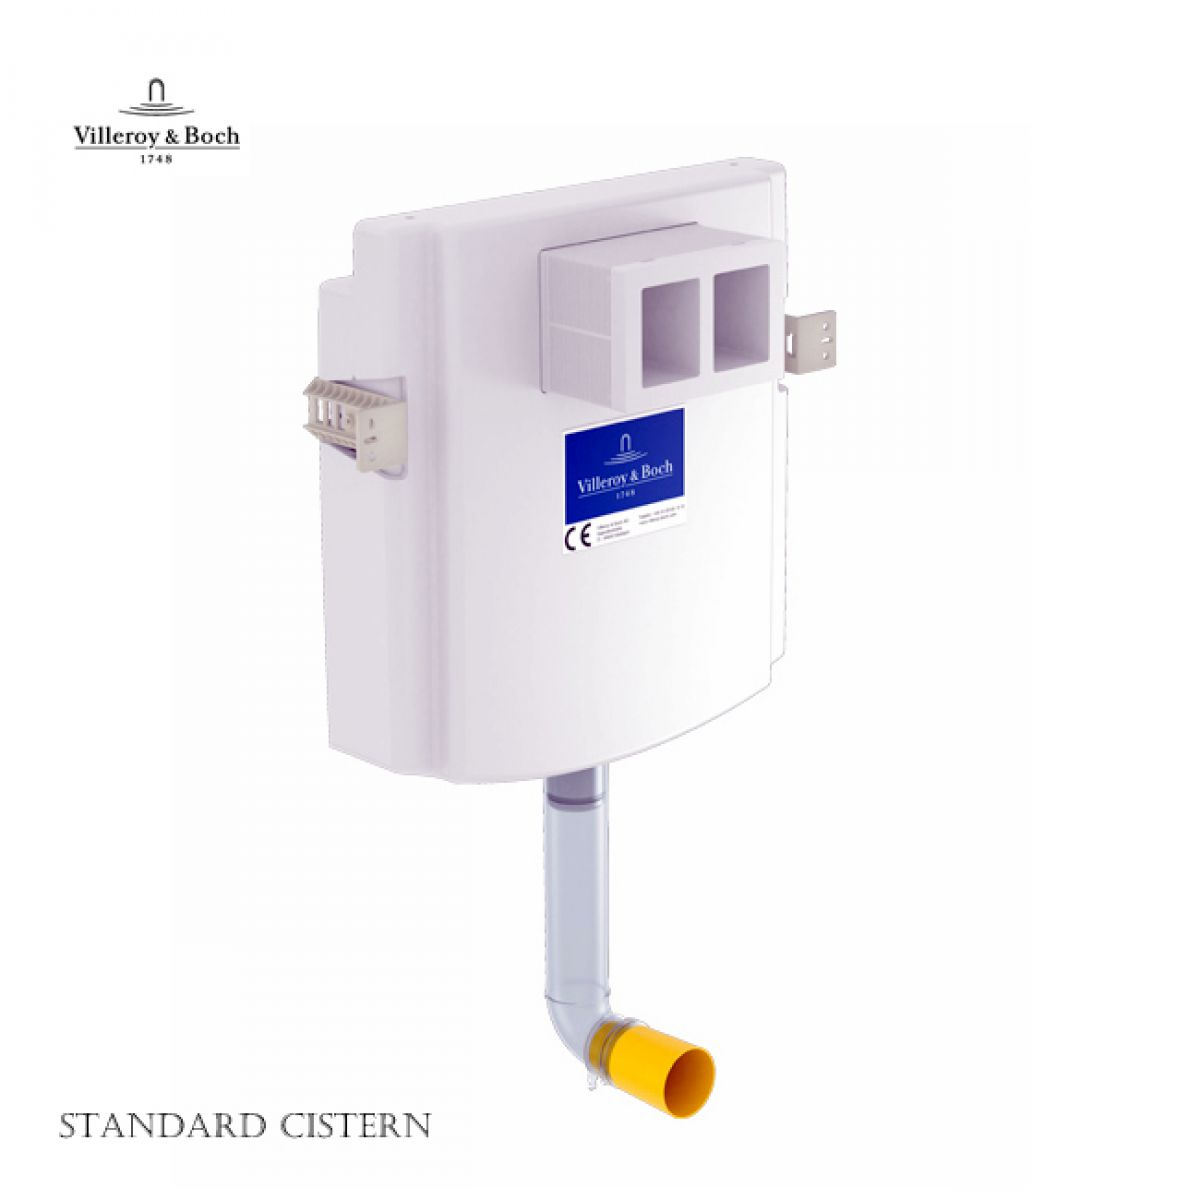 Villeroy & Boch ViConnect Concealed Cistern